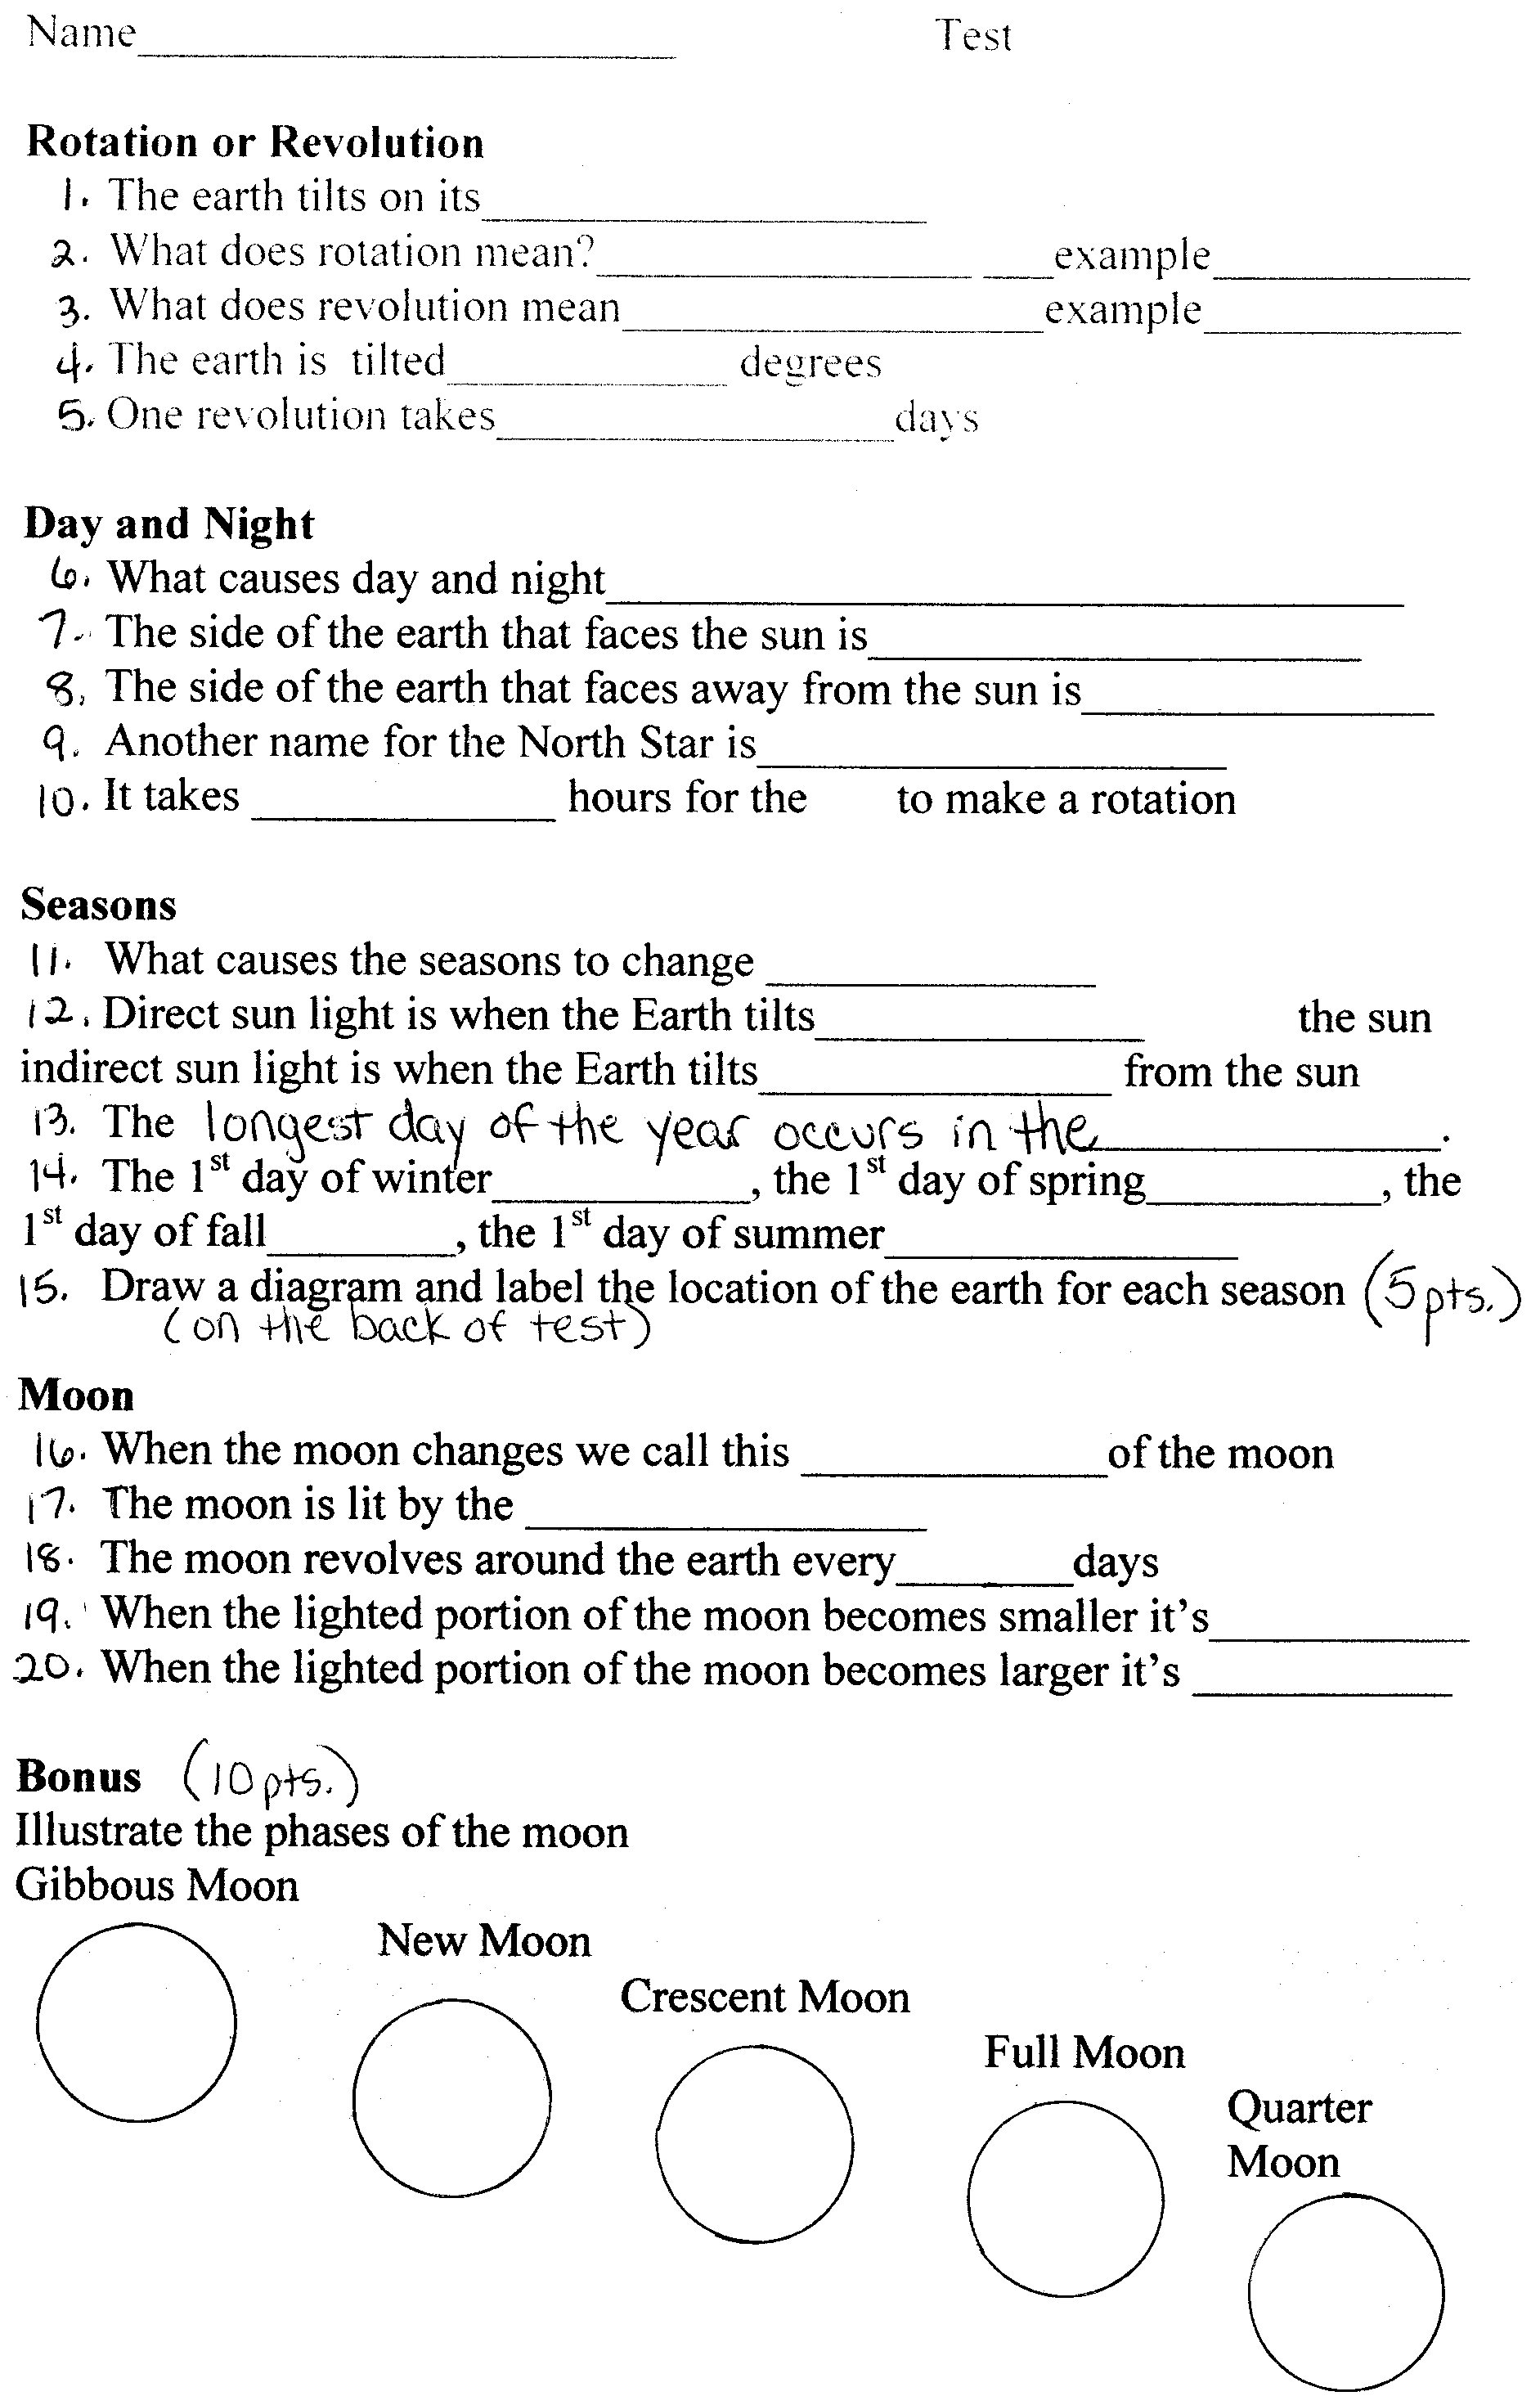 Worksheet Earth Science Worksheets earth science powerpoint astronomy exam